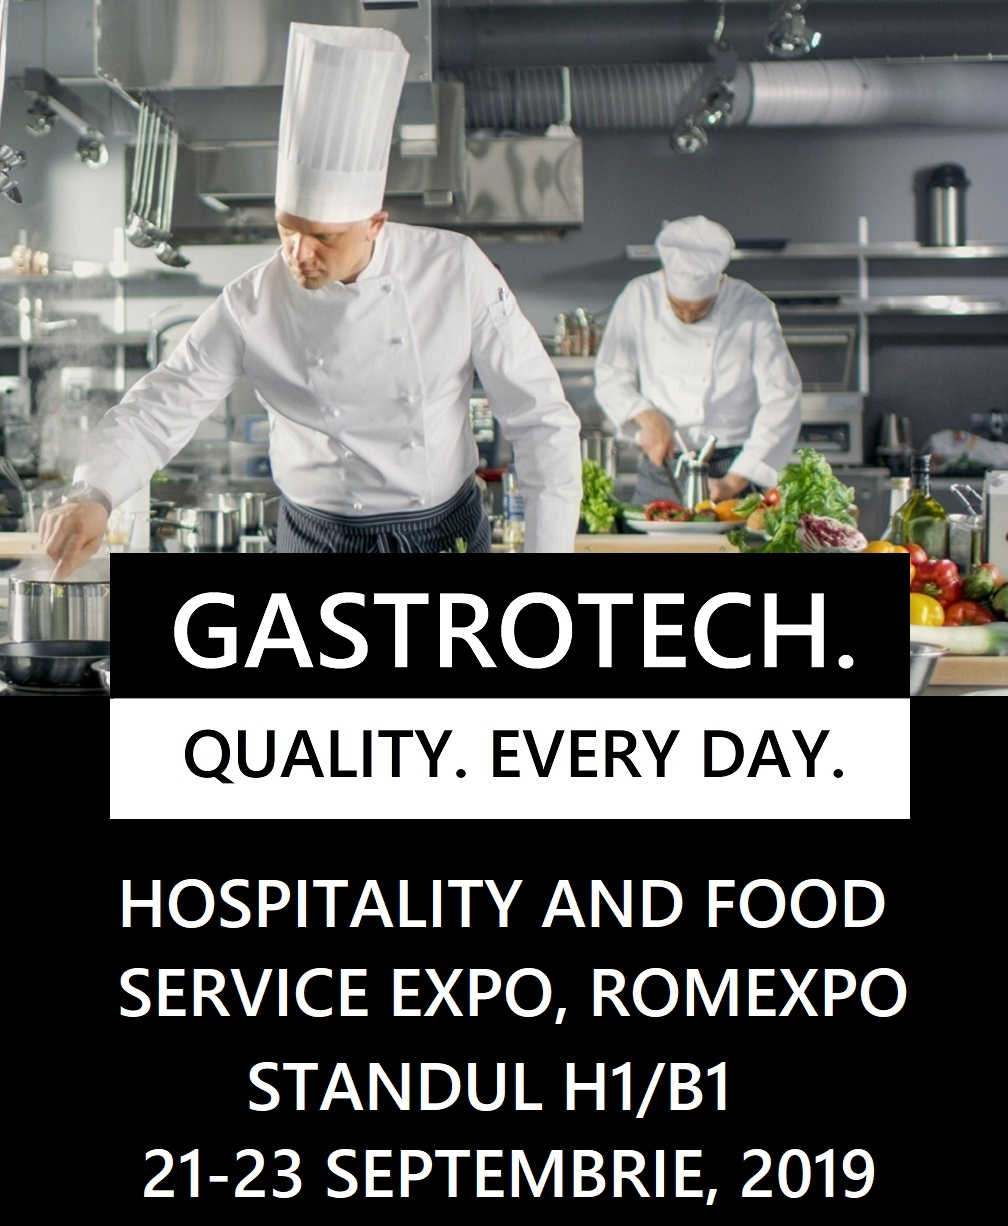 Hospitality and Food Service Expo